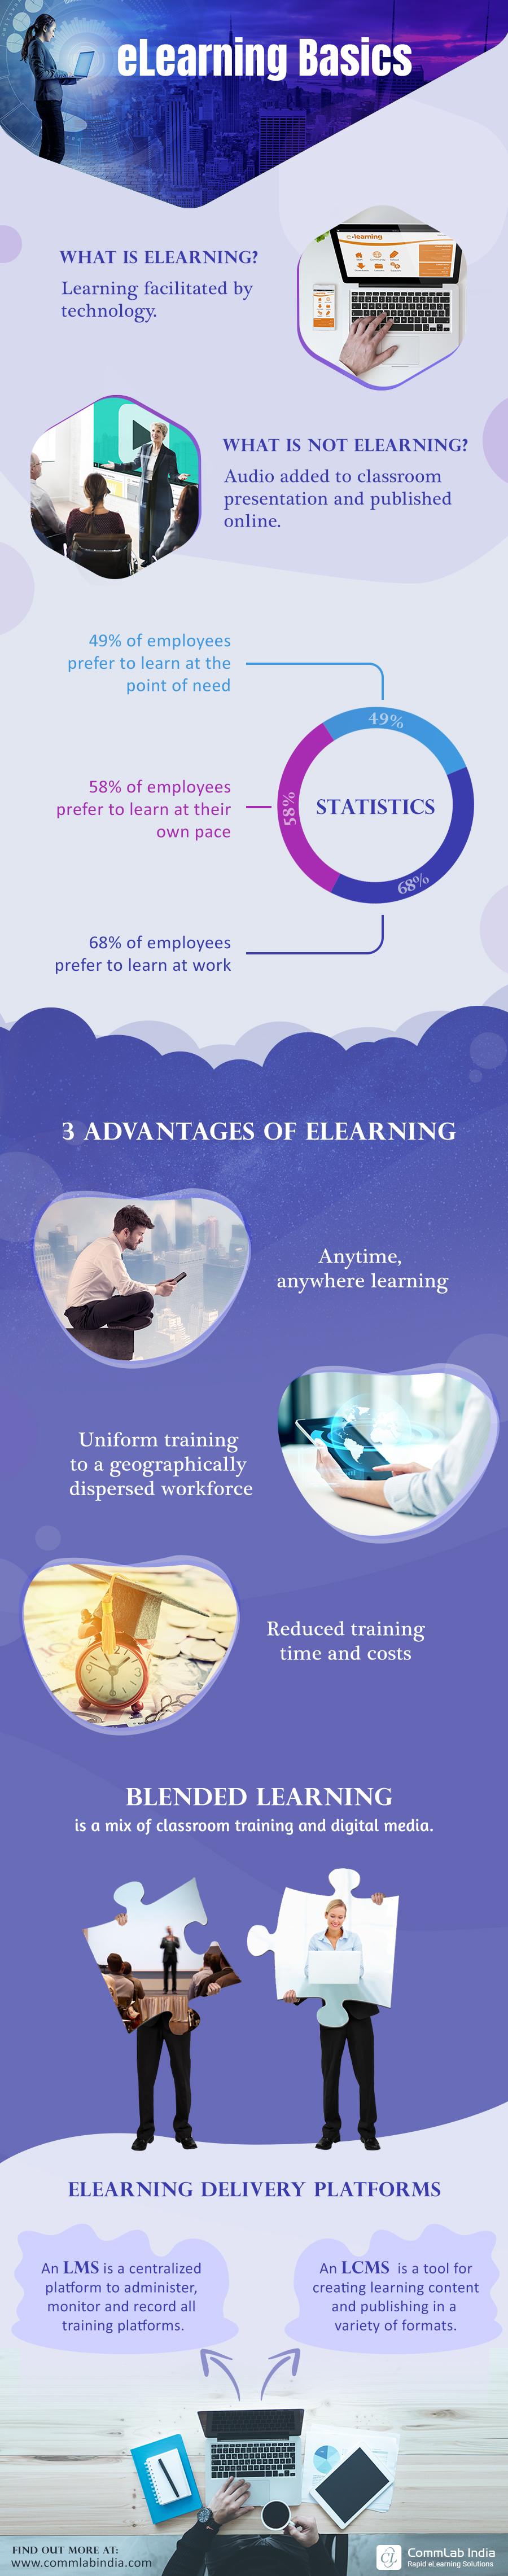 eLearning Basics [Infographic]